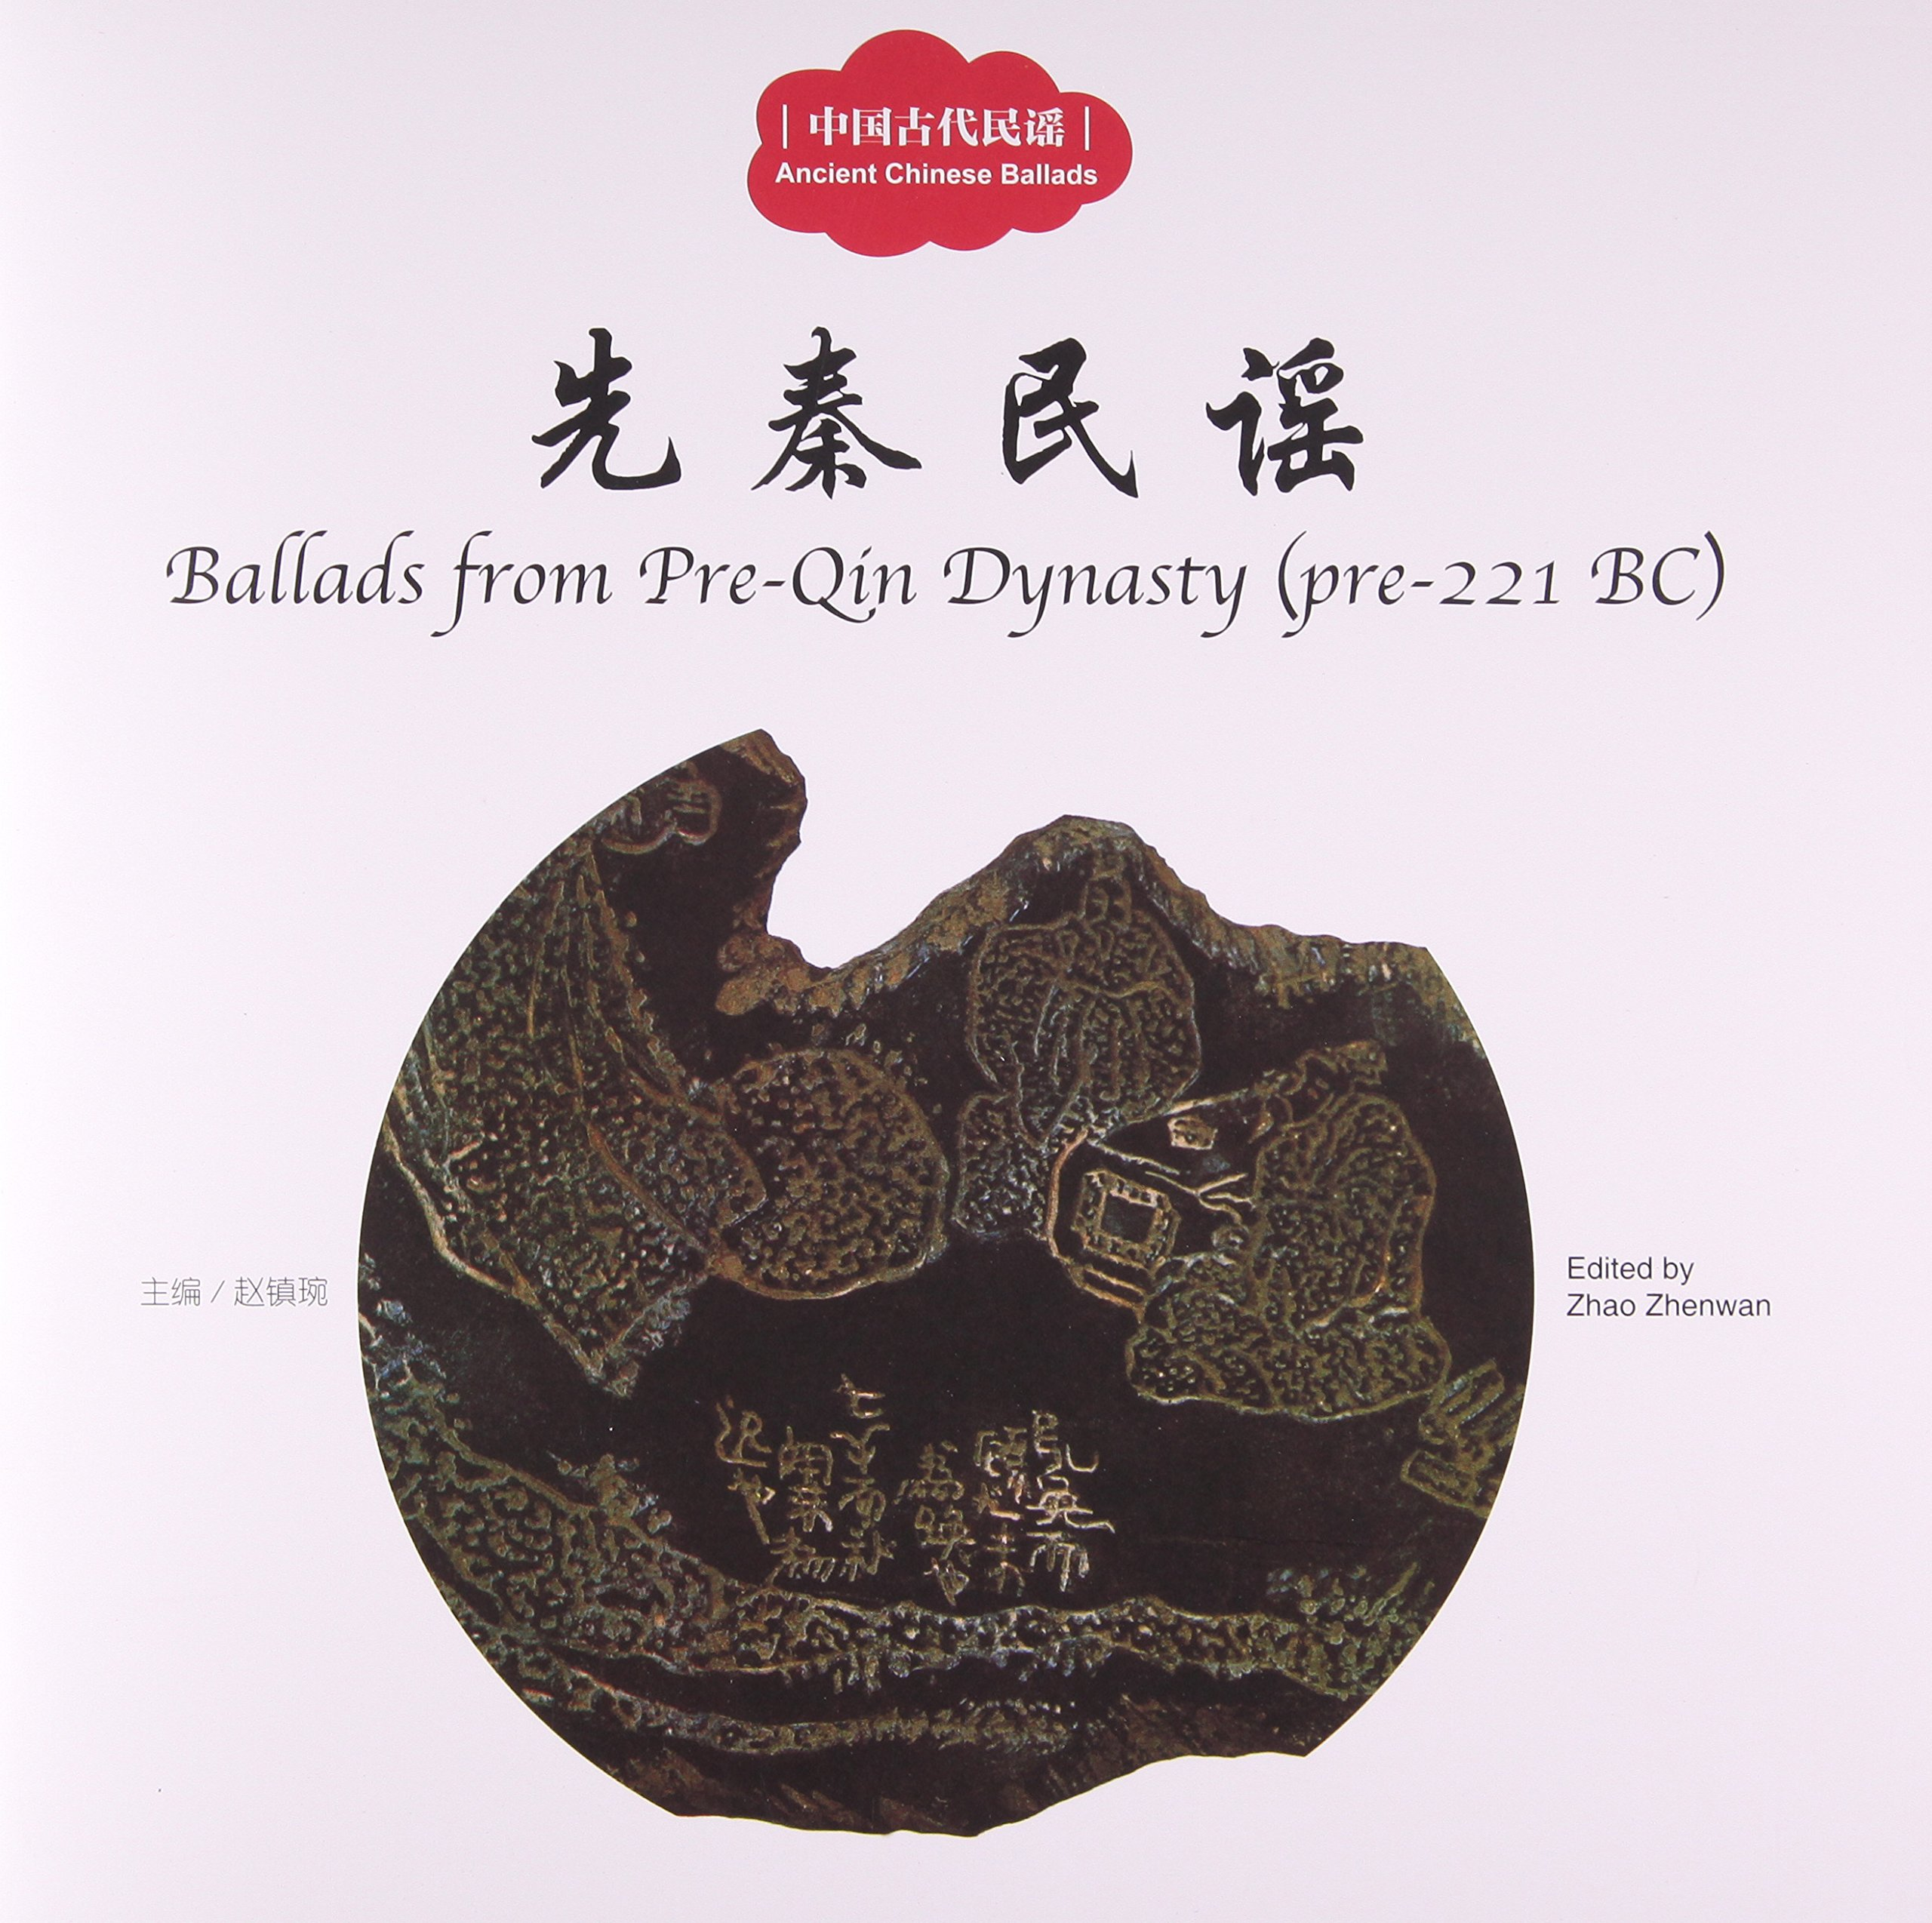 Ballads from Pre-Qin Dynasty (pre-221 BC) - First Books for Early Learning Series